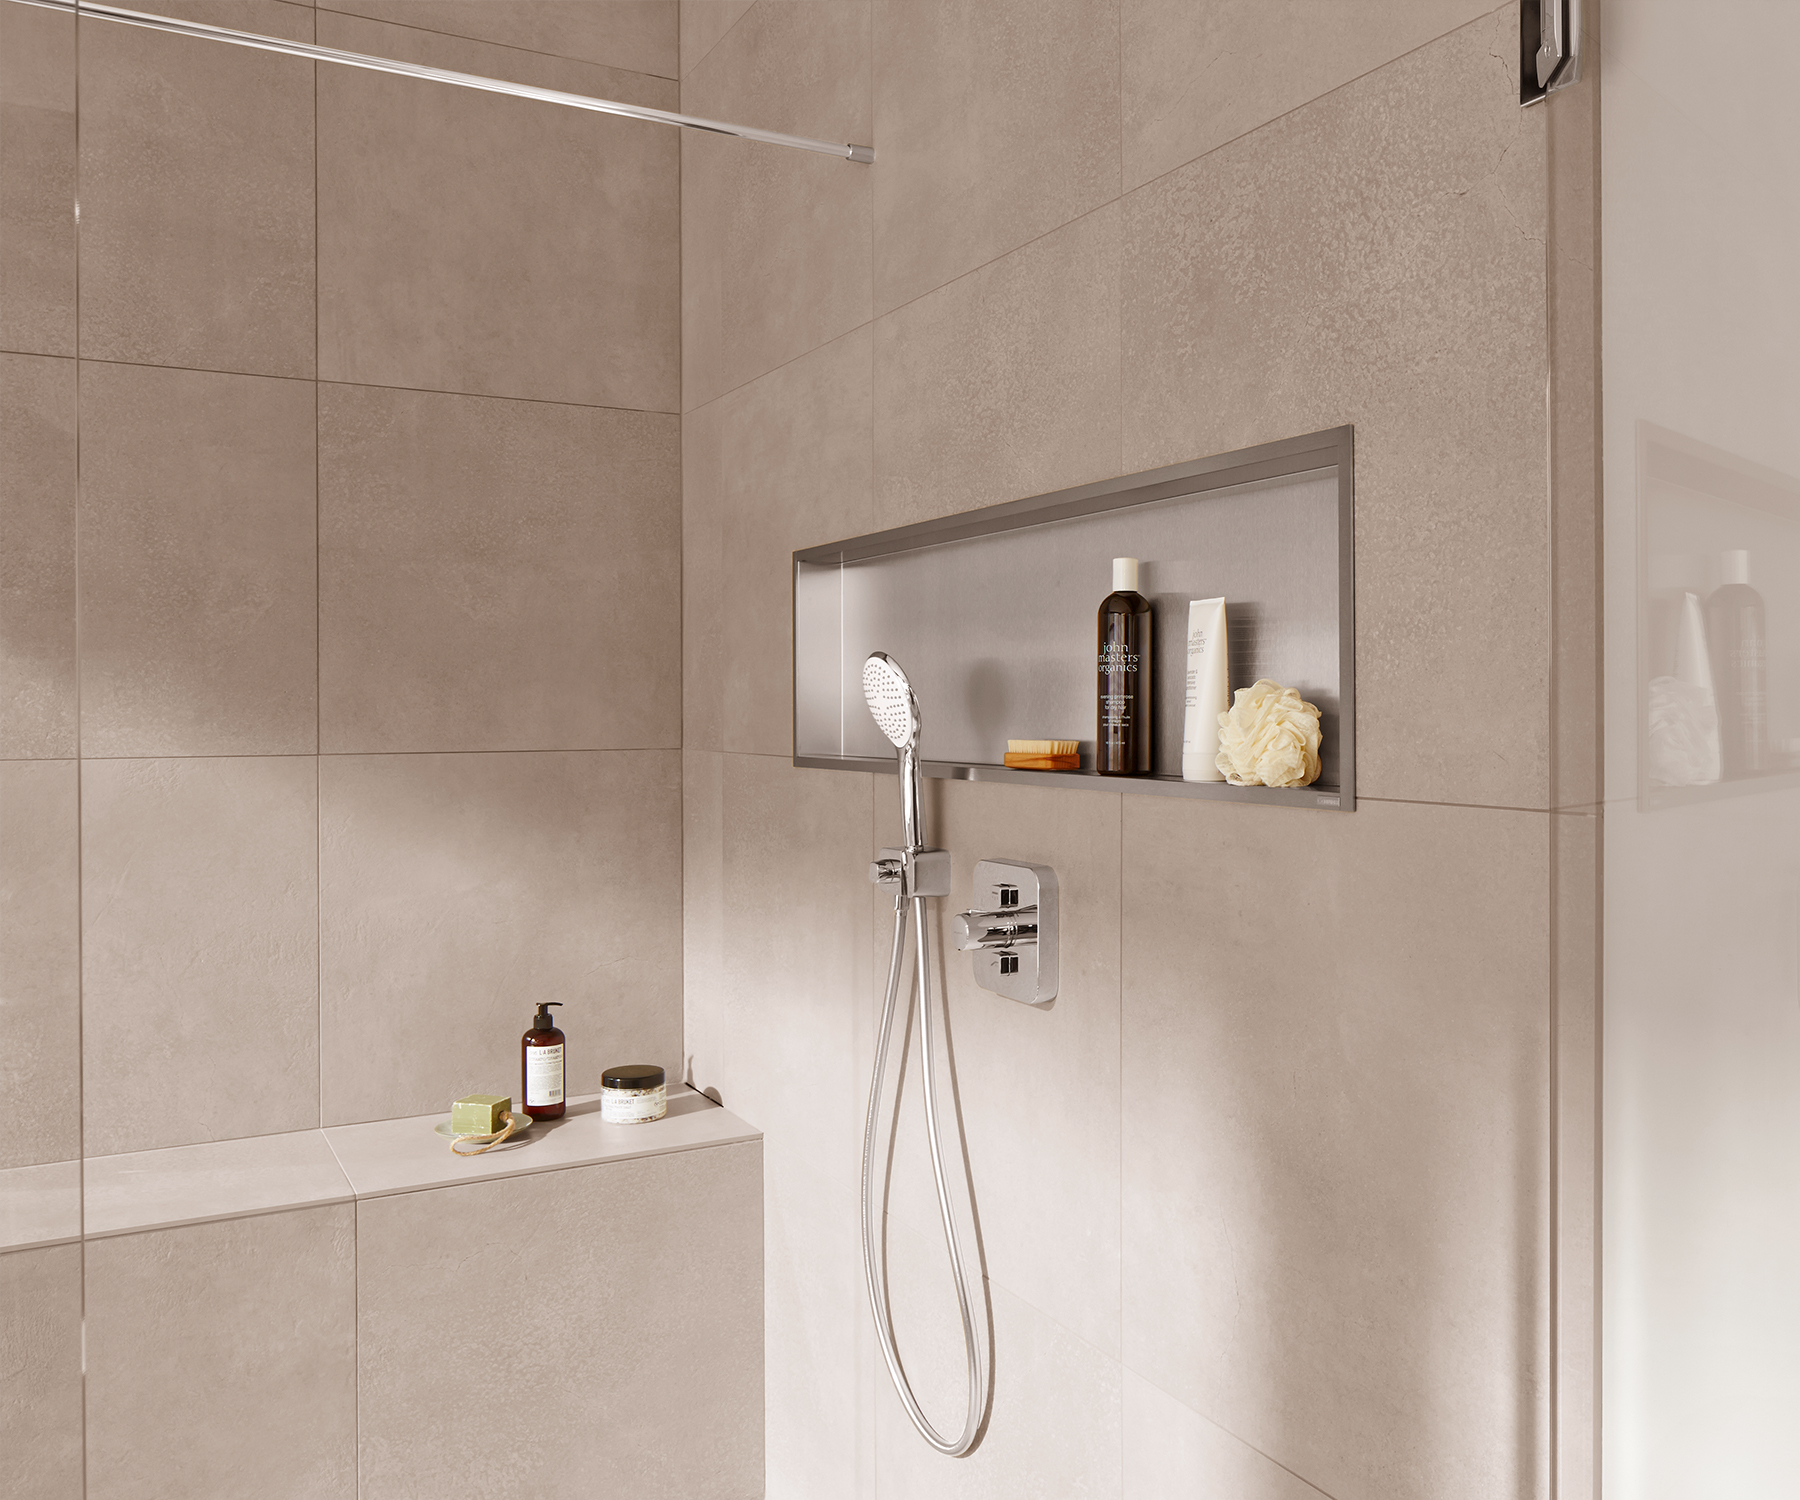 Bathroom Wall Mirrors Large: [How-to] Make A Wall Niche In Your Bathroom